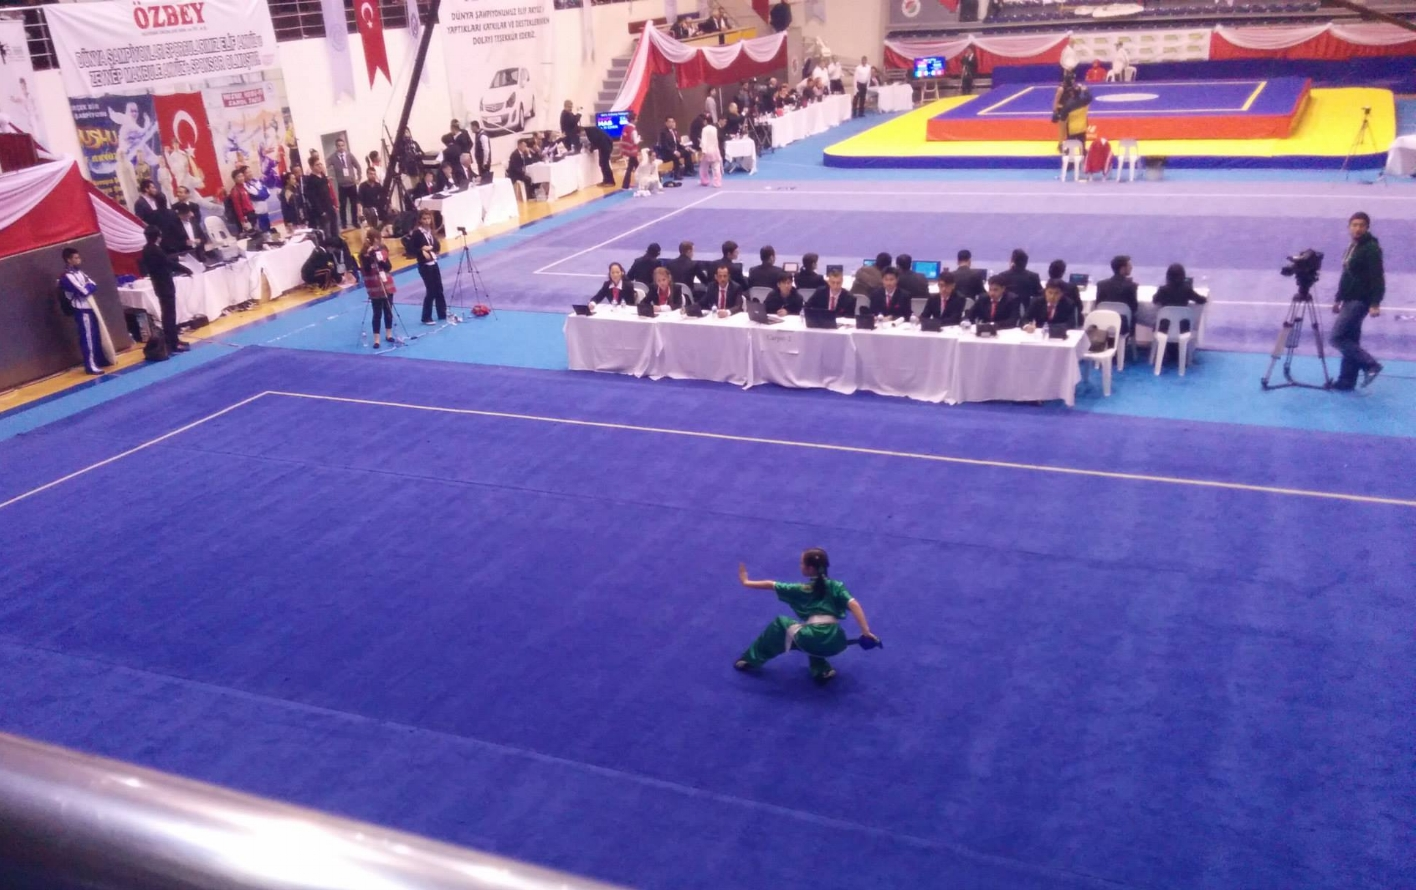 Julia_Wayland_Li_Wushu_World_Junior_Championships_Broadsword_Daoshu_2014_1.jpg